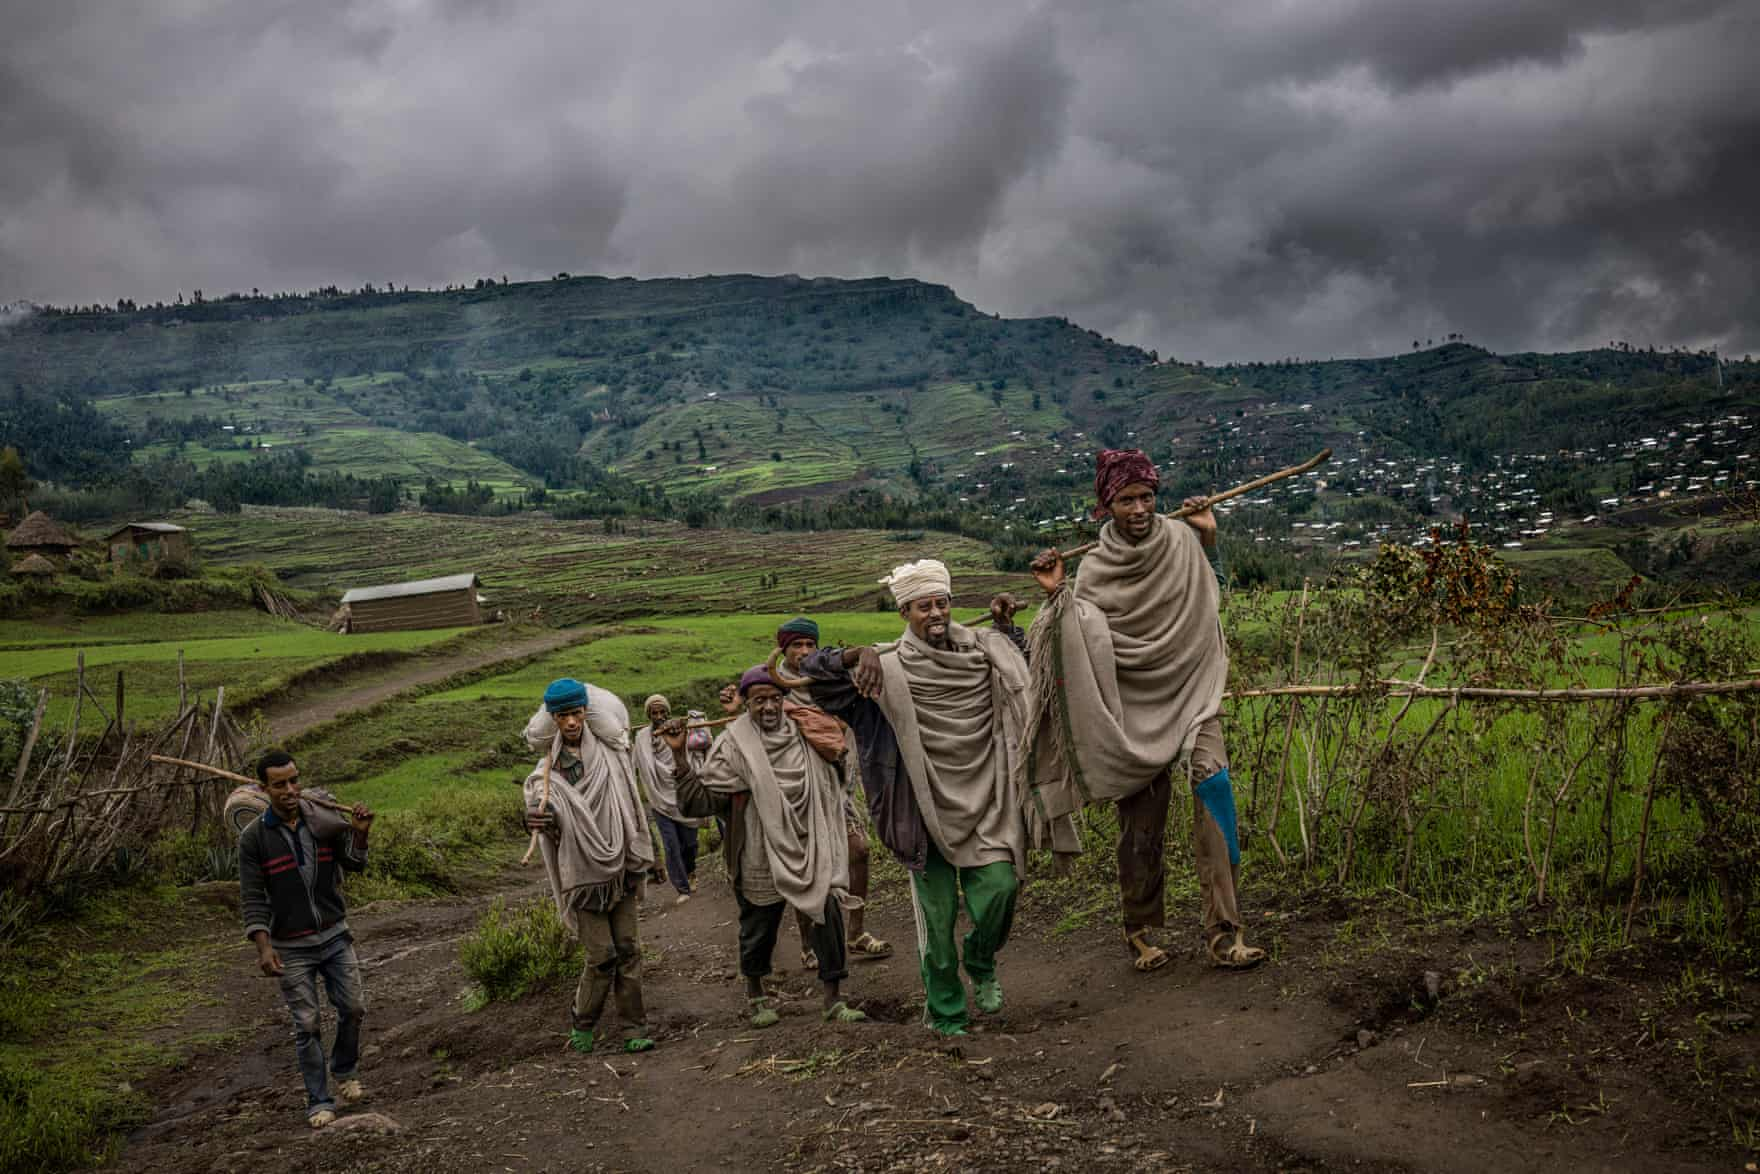 A group of men walk back to their village. Walking is the most common mode of transport in the highlands, where there are few motorbikes and people often have to cross difficult terrain to reach the nearest town via The Guardian